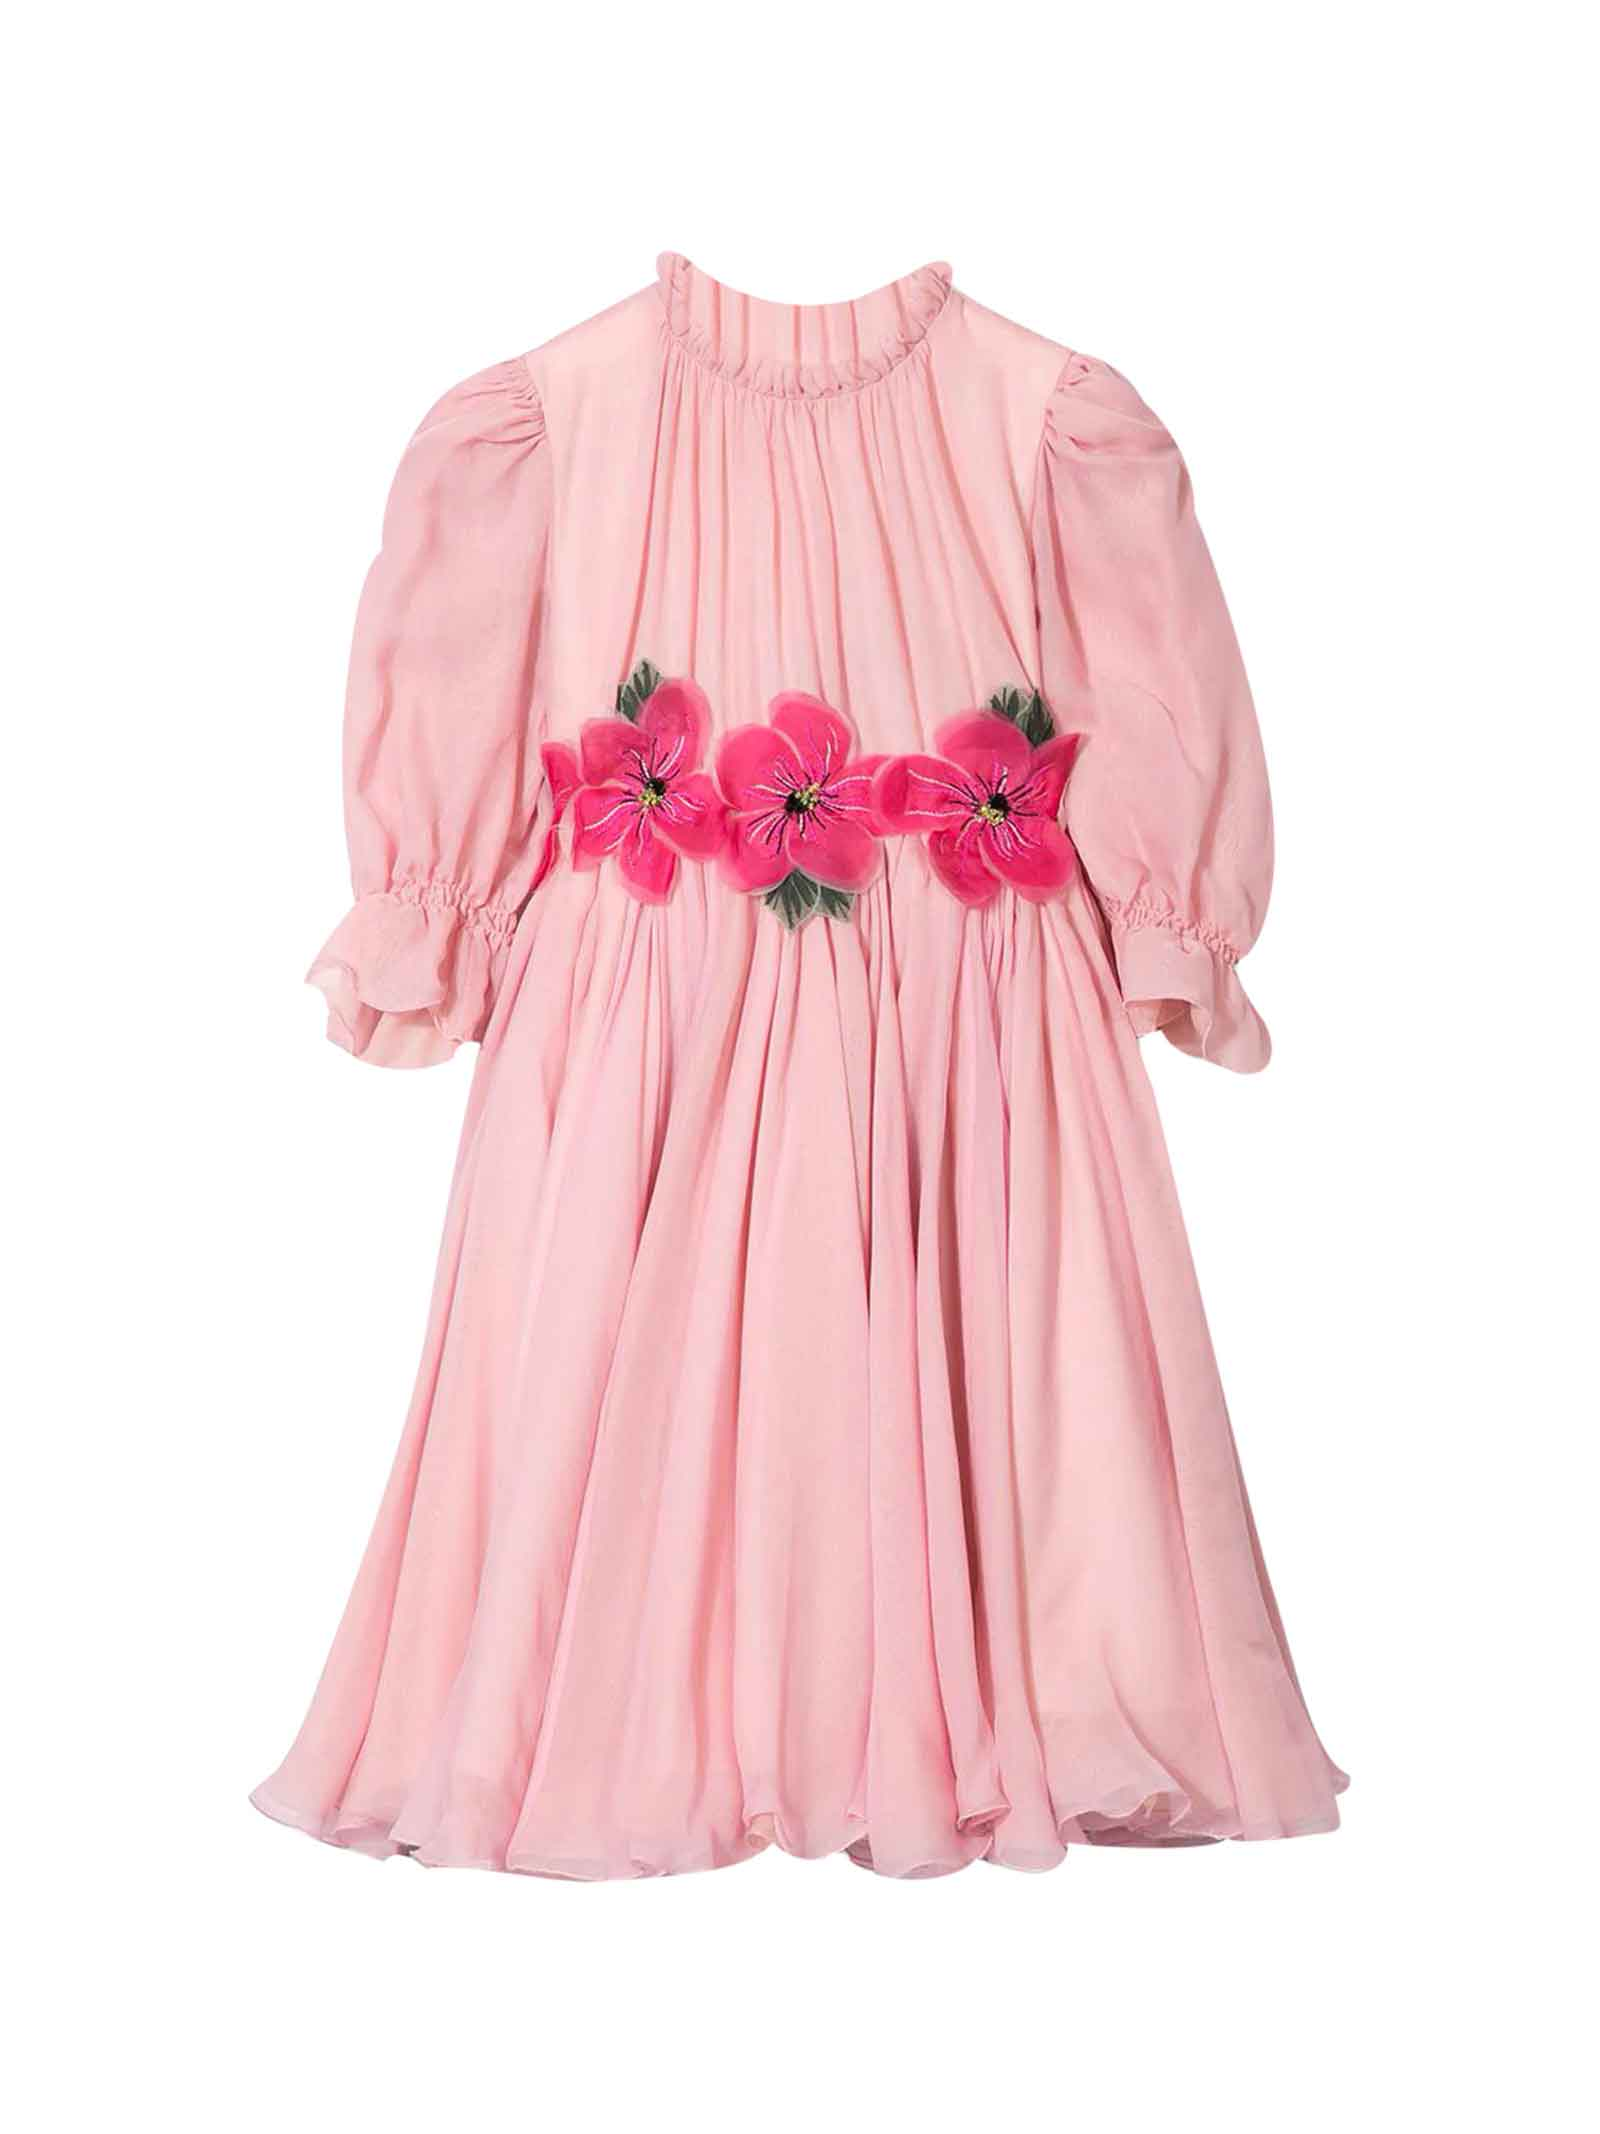 Buy Dolce & Gabbana Pink Dress With Embroidered Flowers Dolce & gabbana Kids online, shop Dolce & Gabbana with free shipping